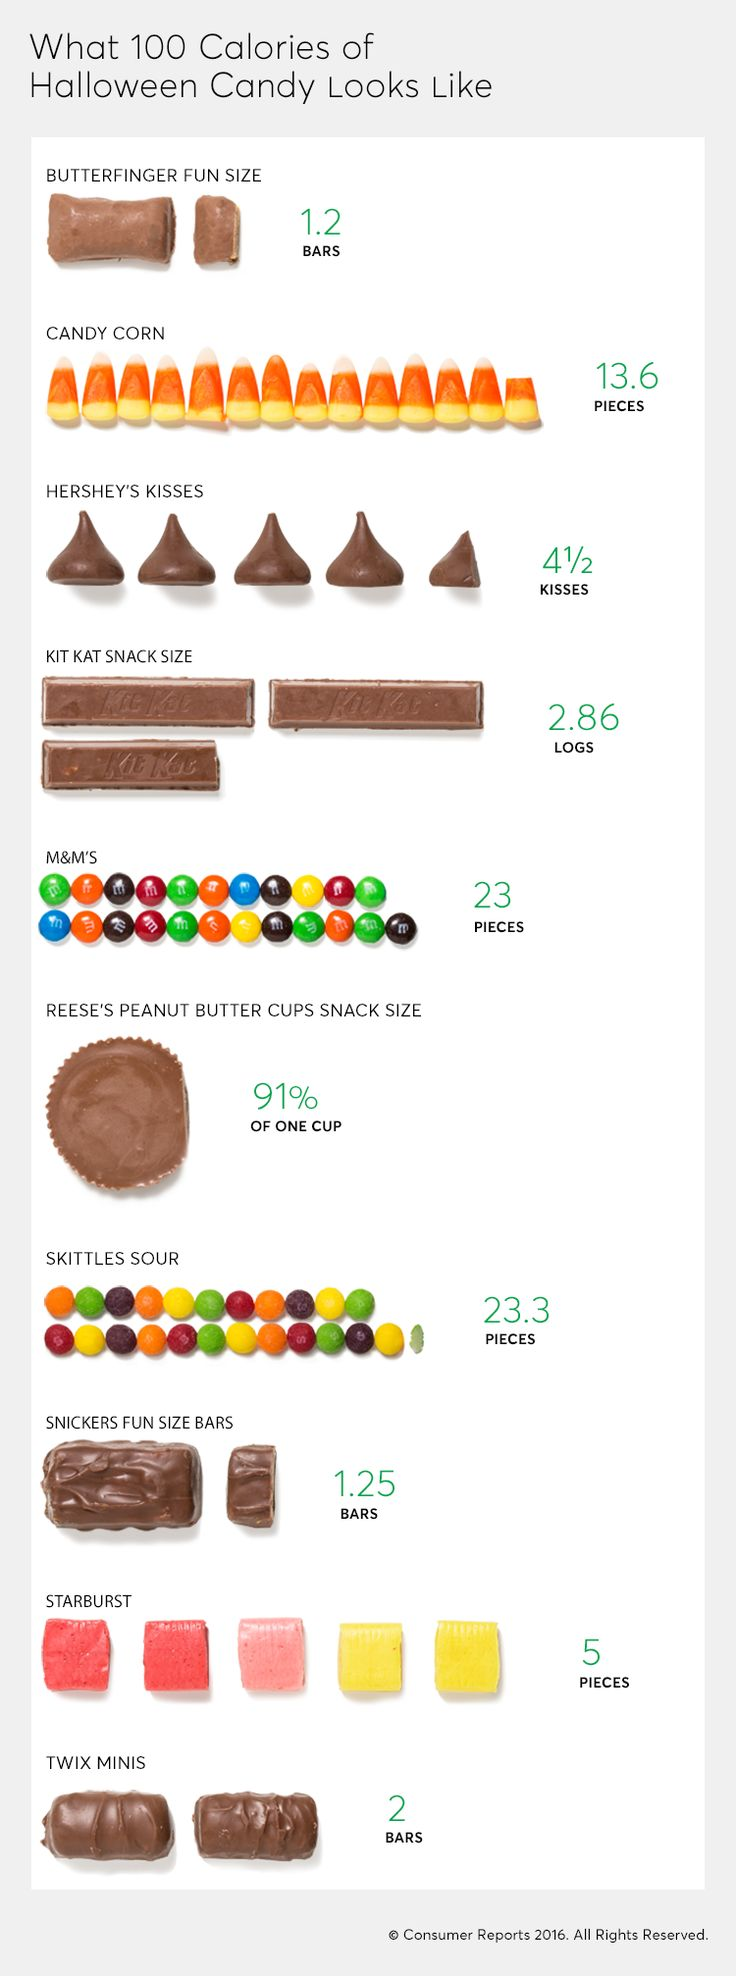 Here's what 100 calories of Halloween candy looks like